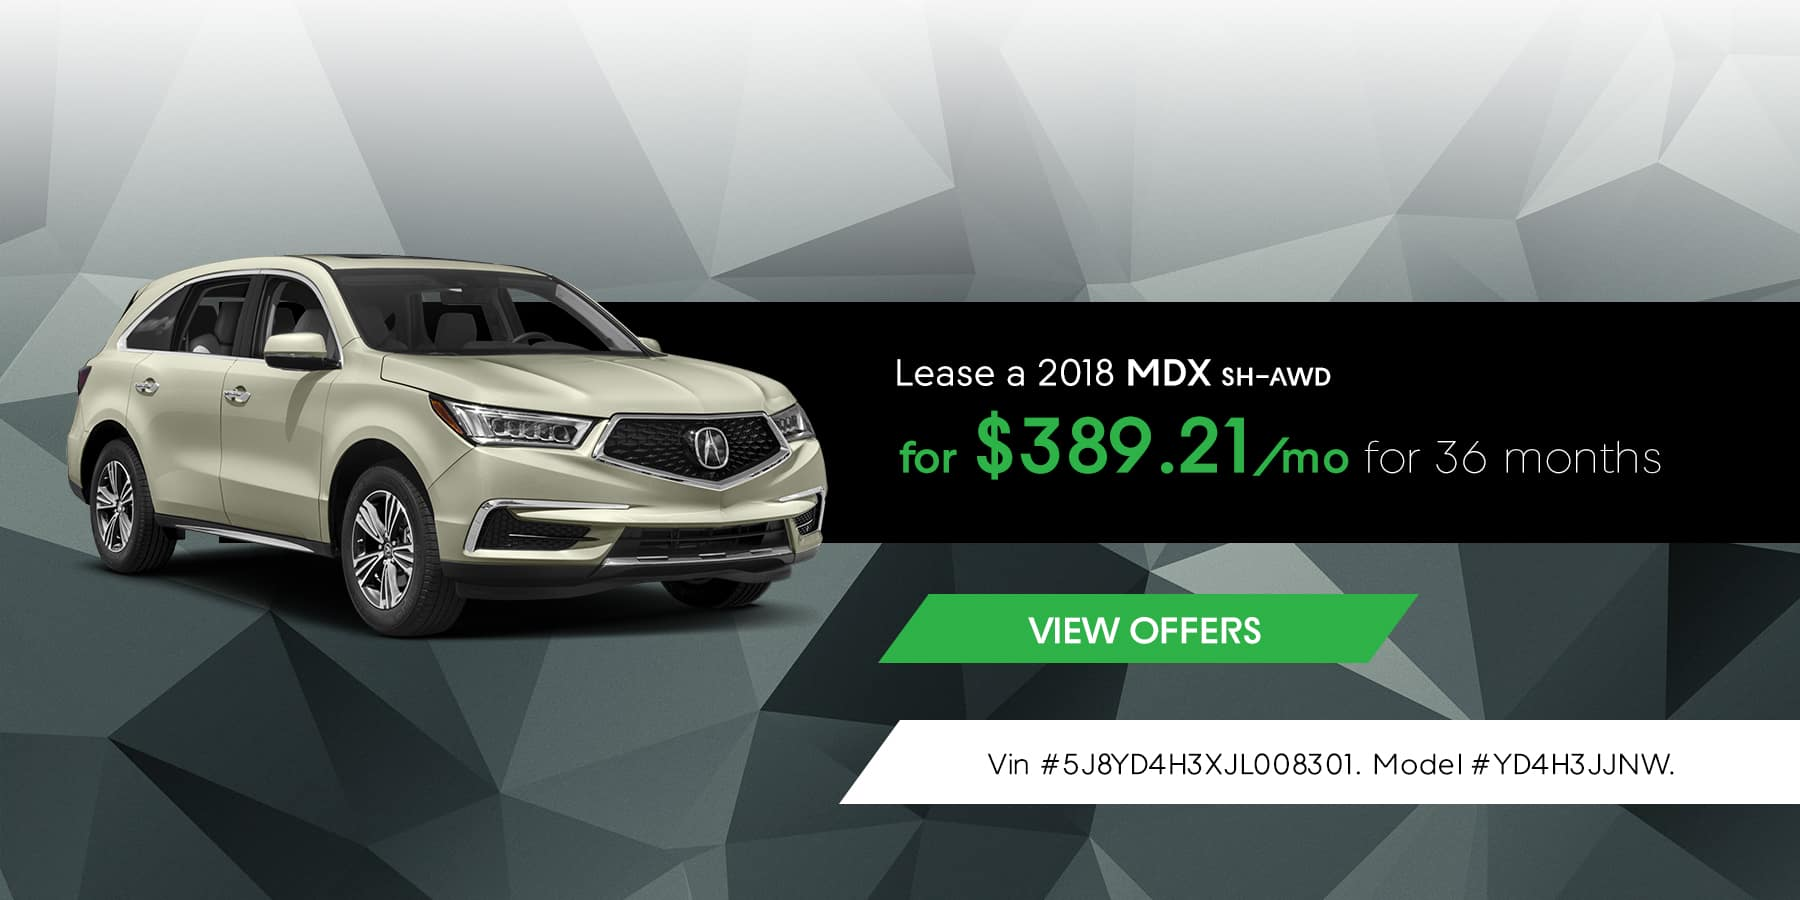 Jeffrey Acura MDX March Offer